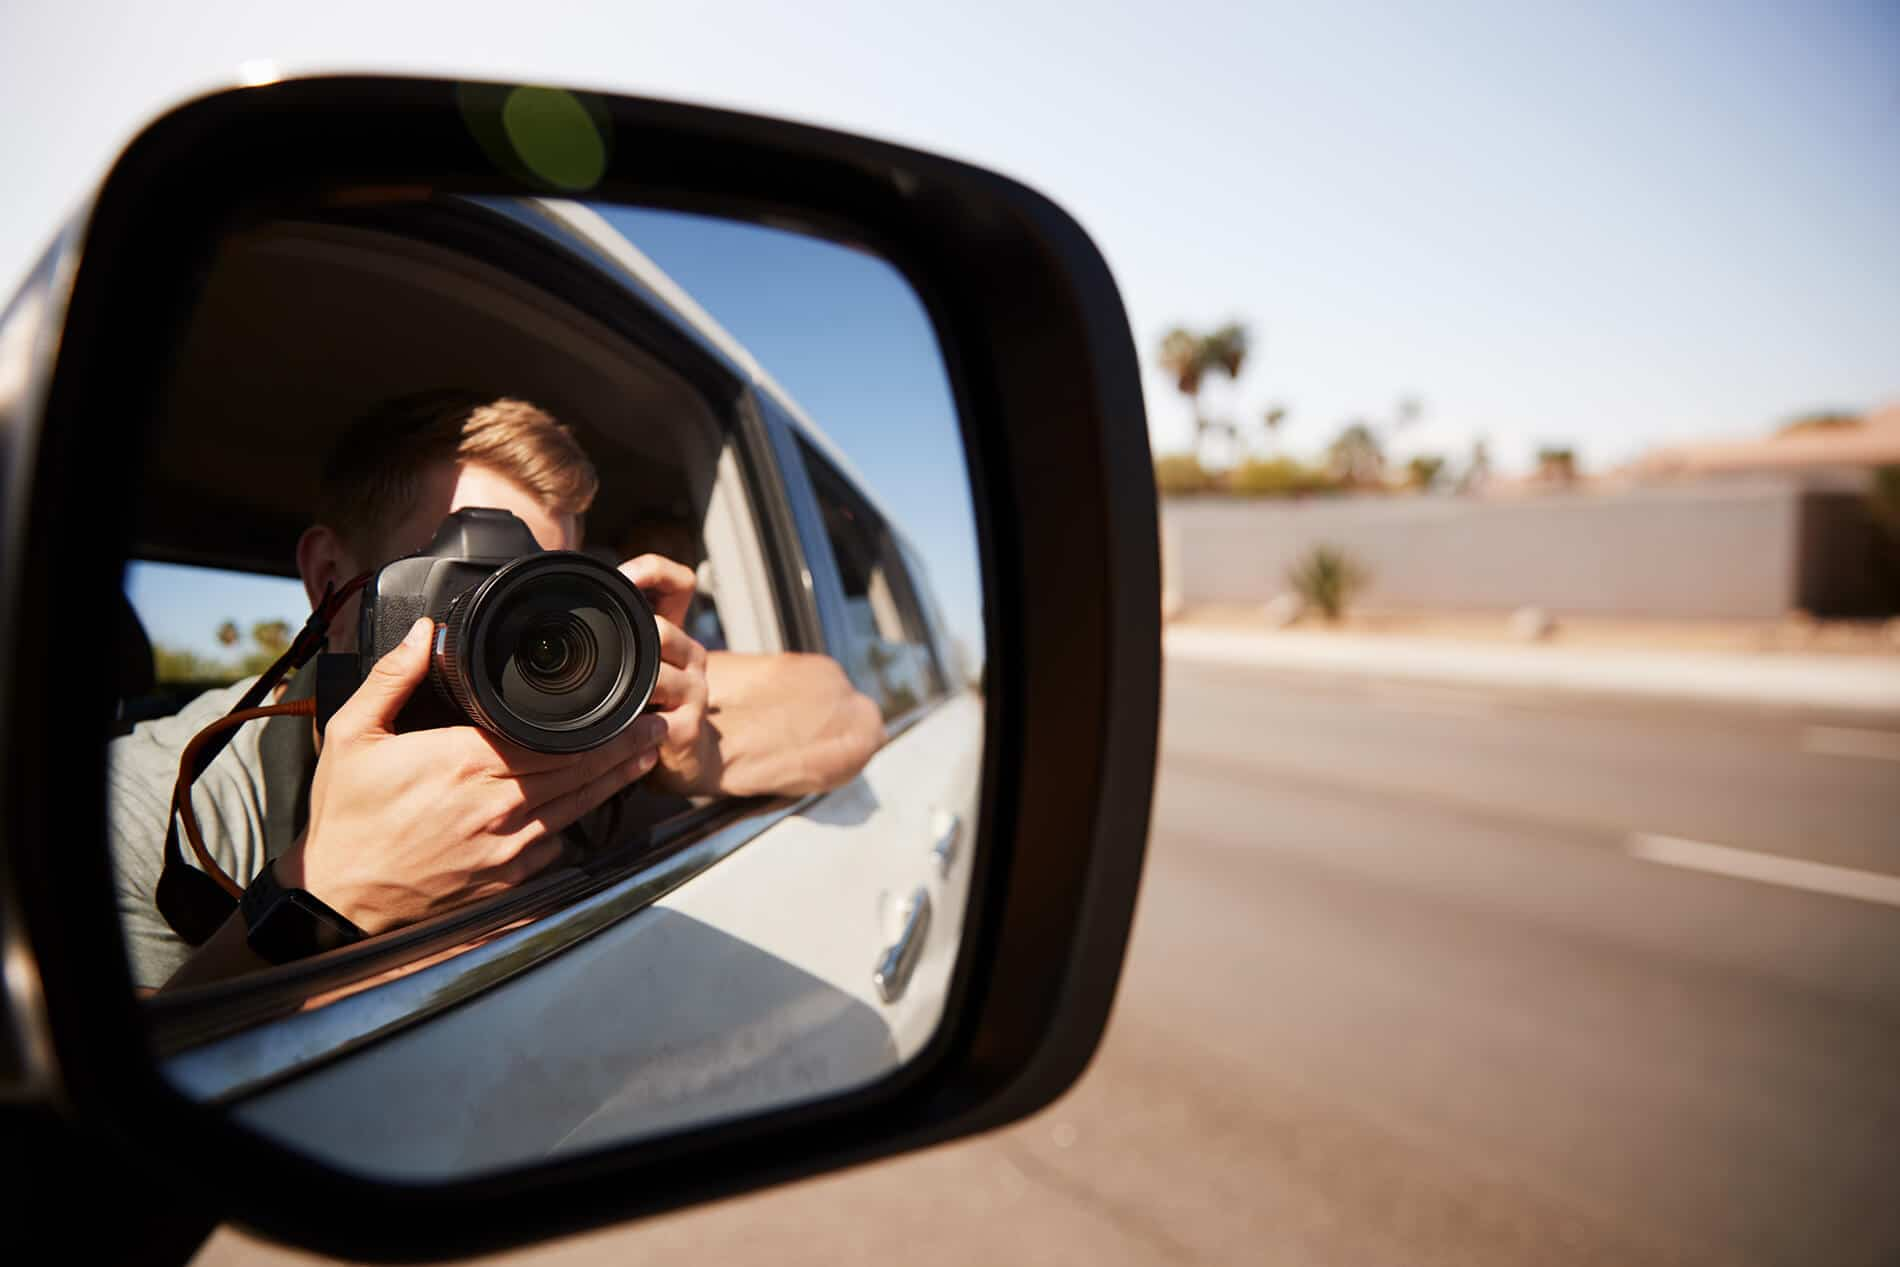 Taylor Martino Rowan Attorneys At Law Taking Accident Photos